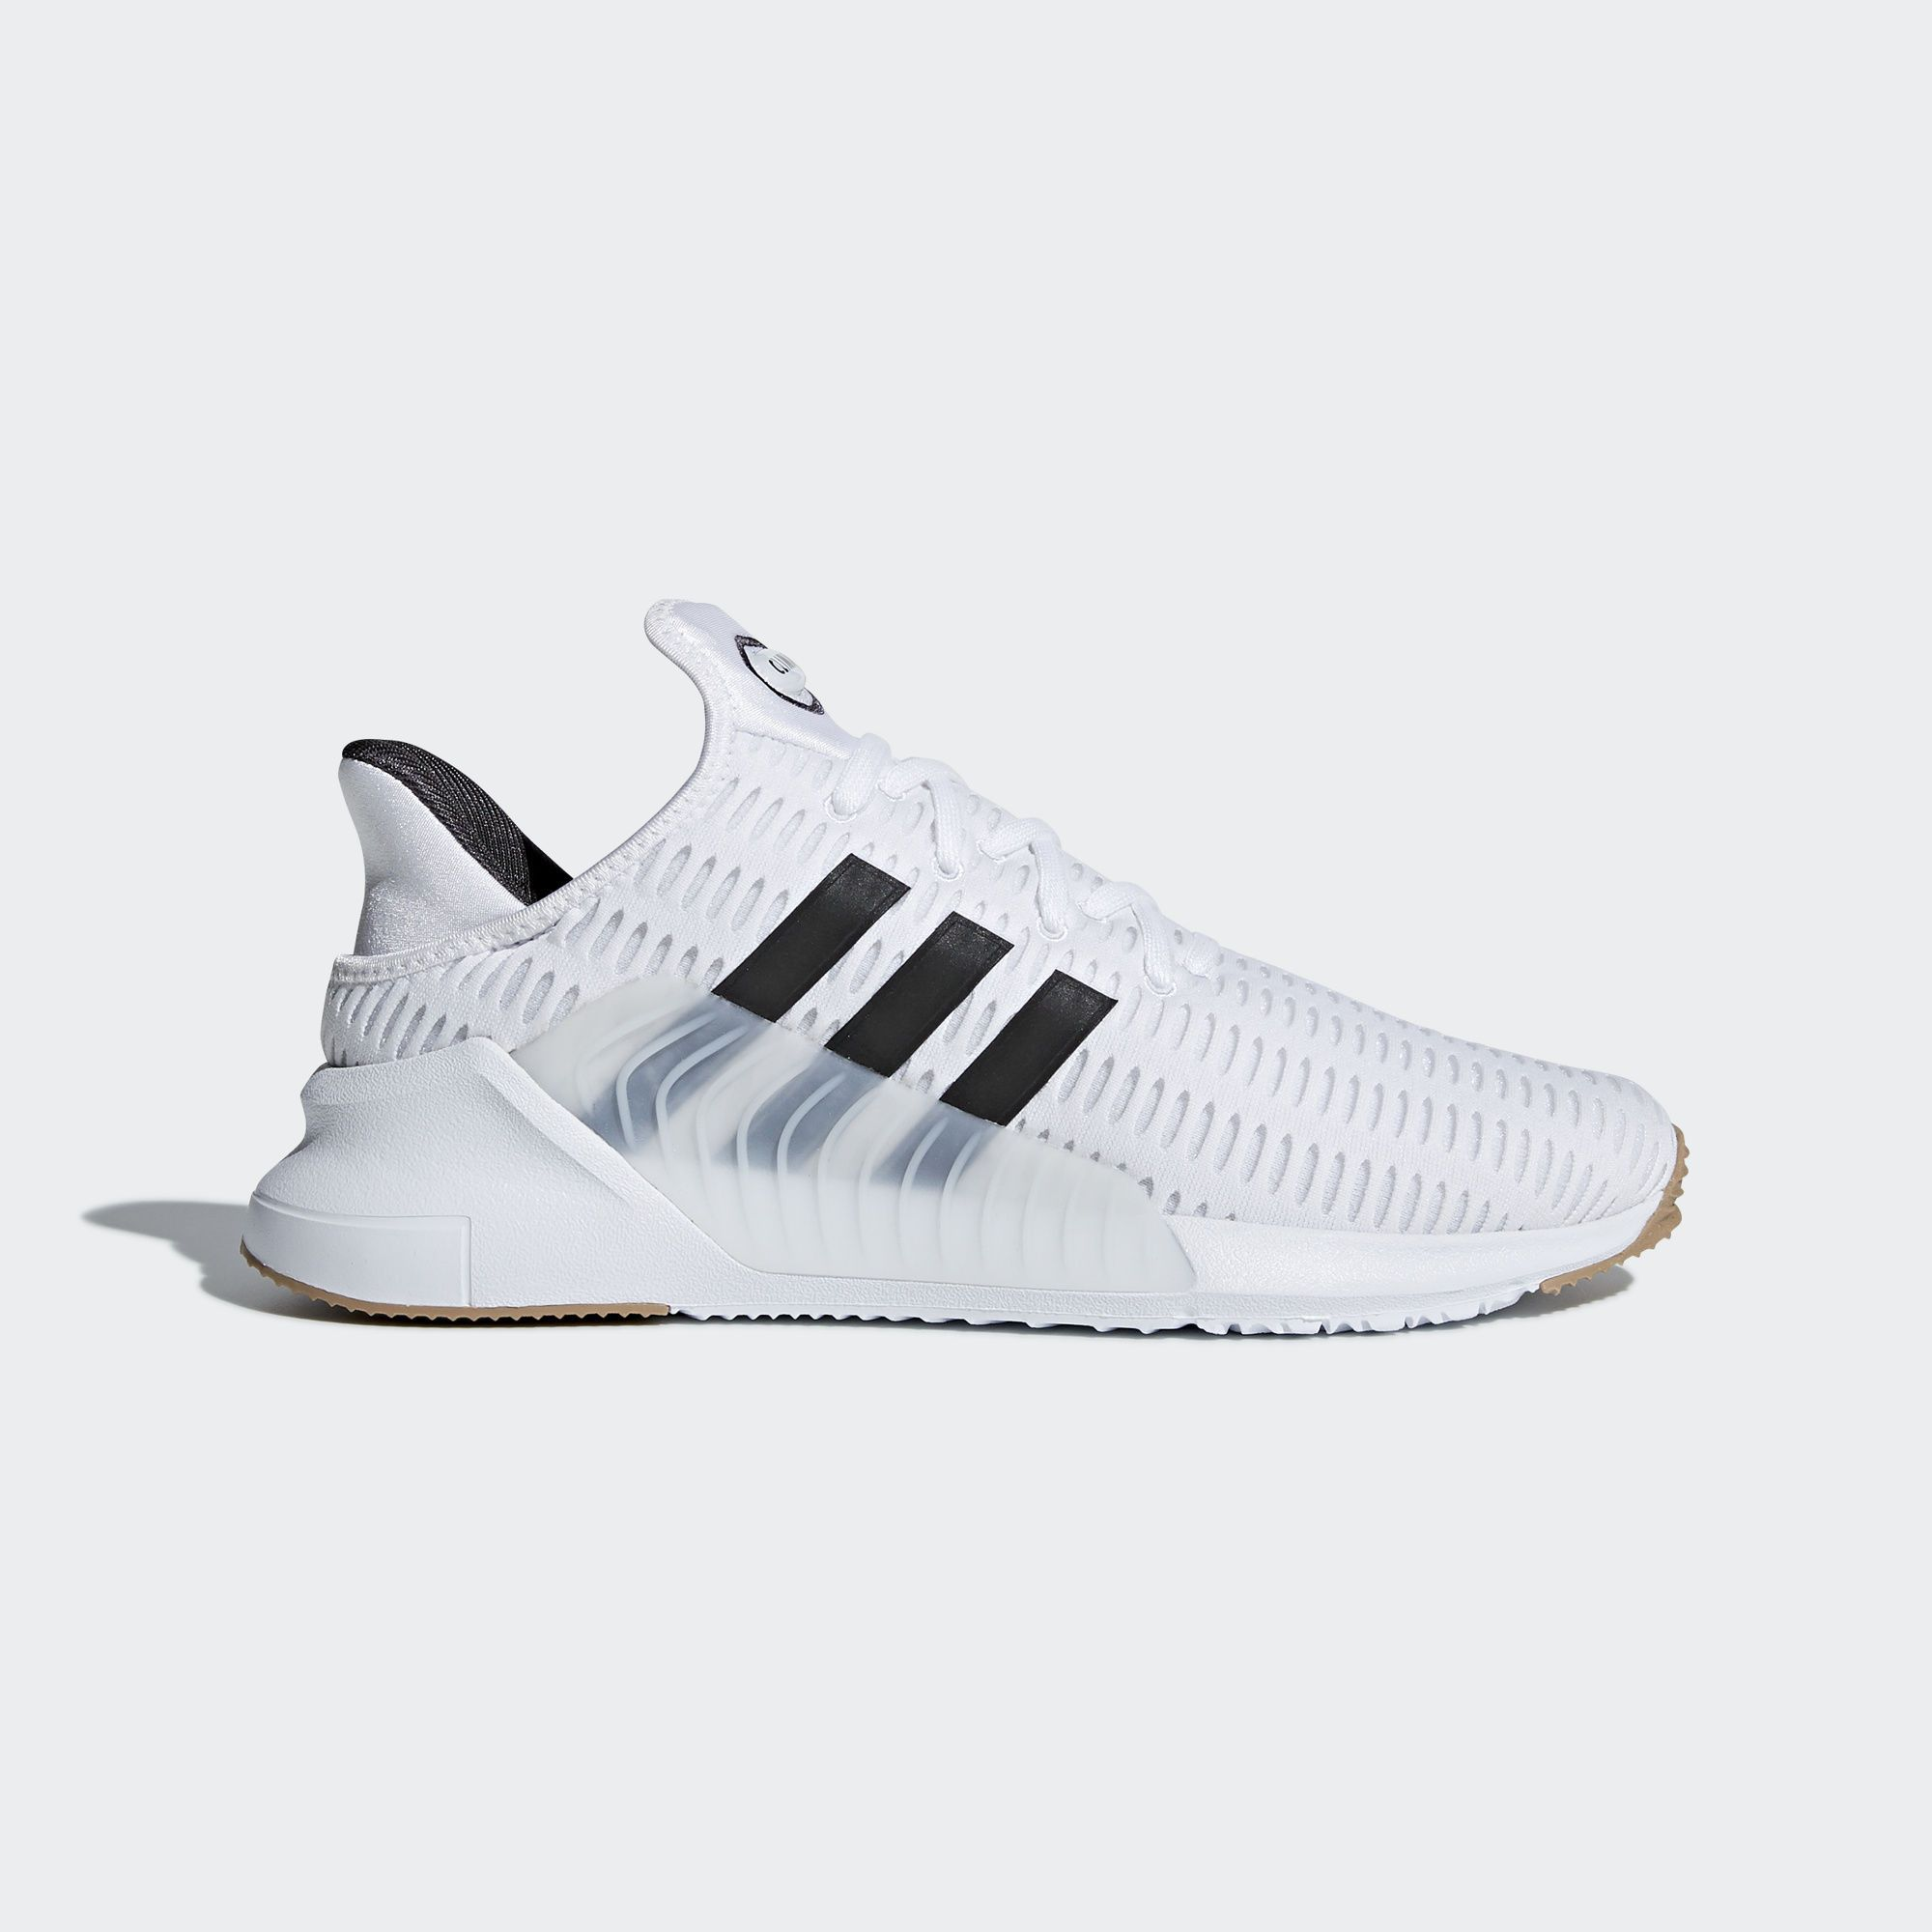 Shop the Climacool 02/17 Shoes - White at adidas.com/us! See all ...